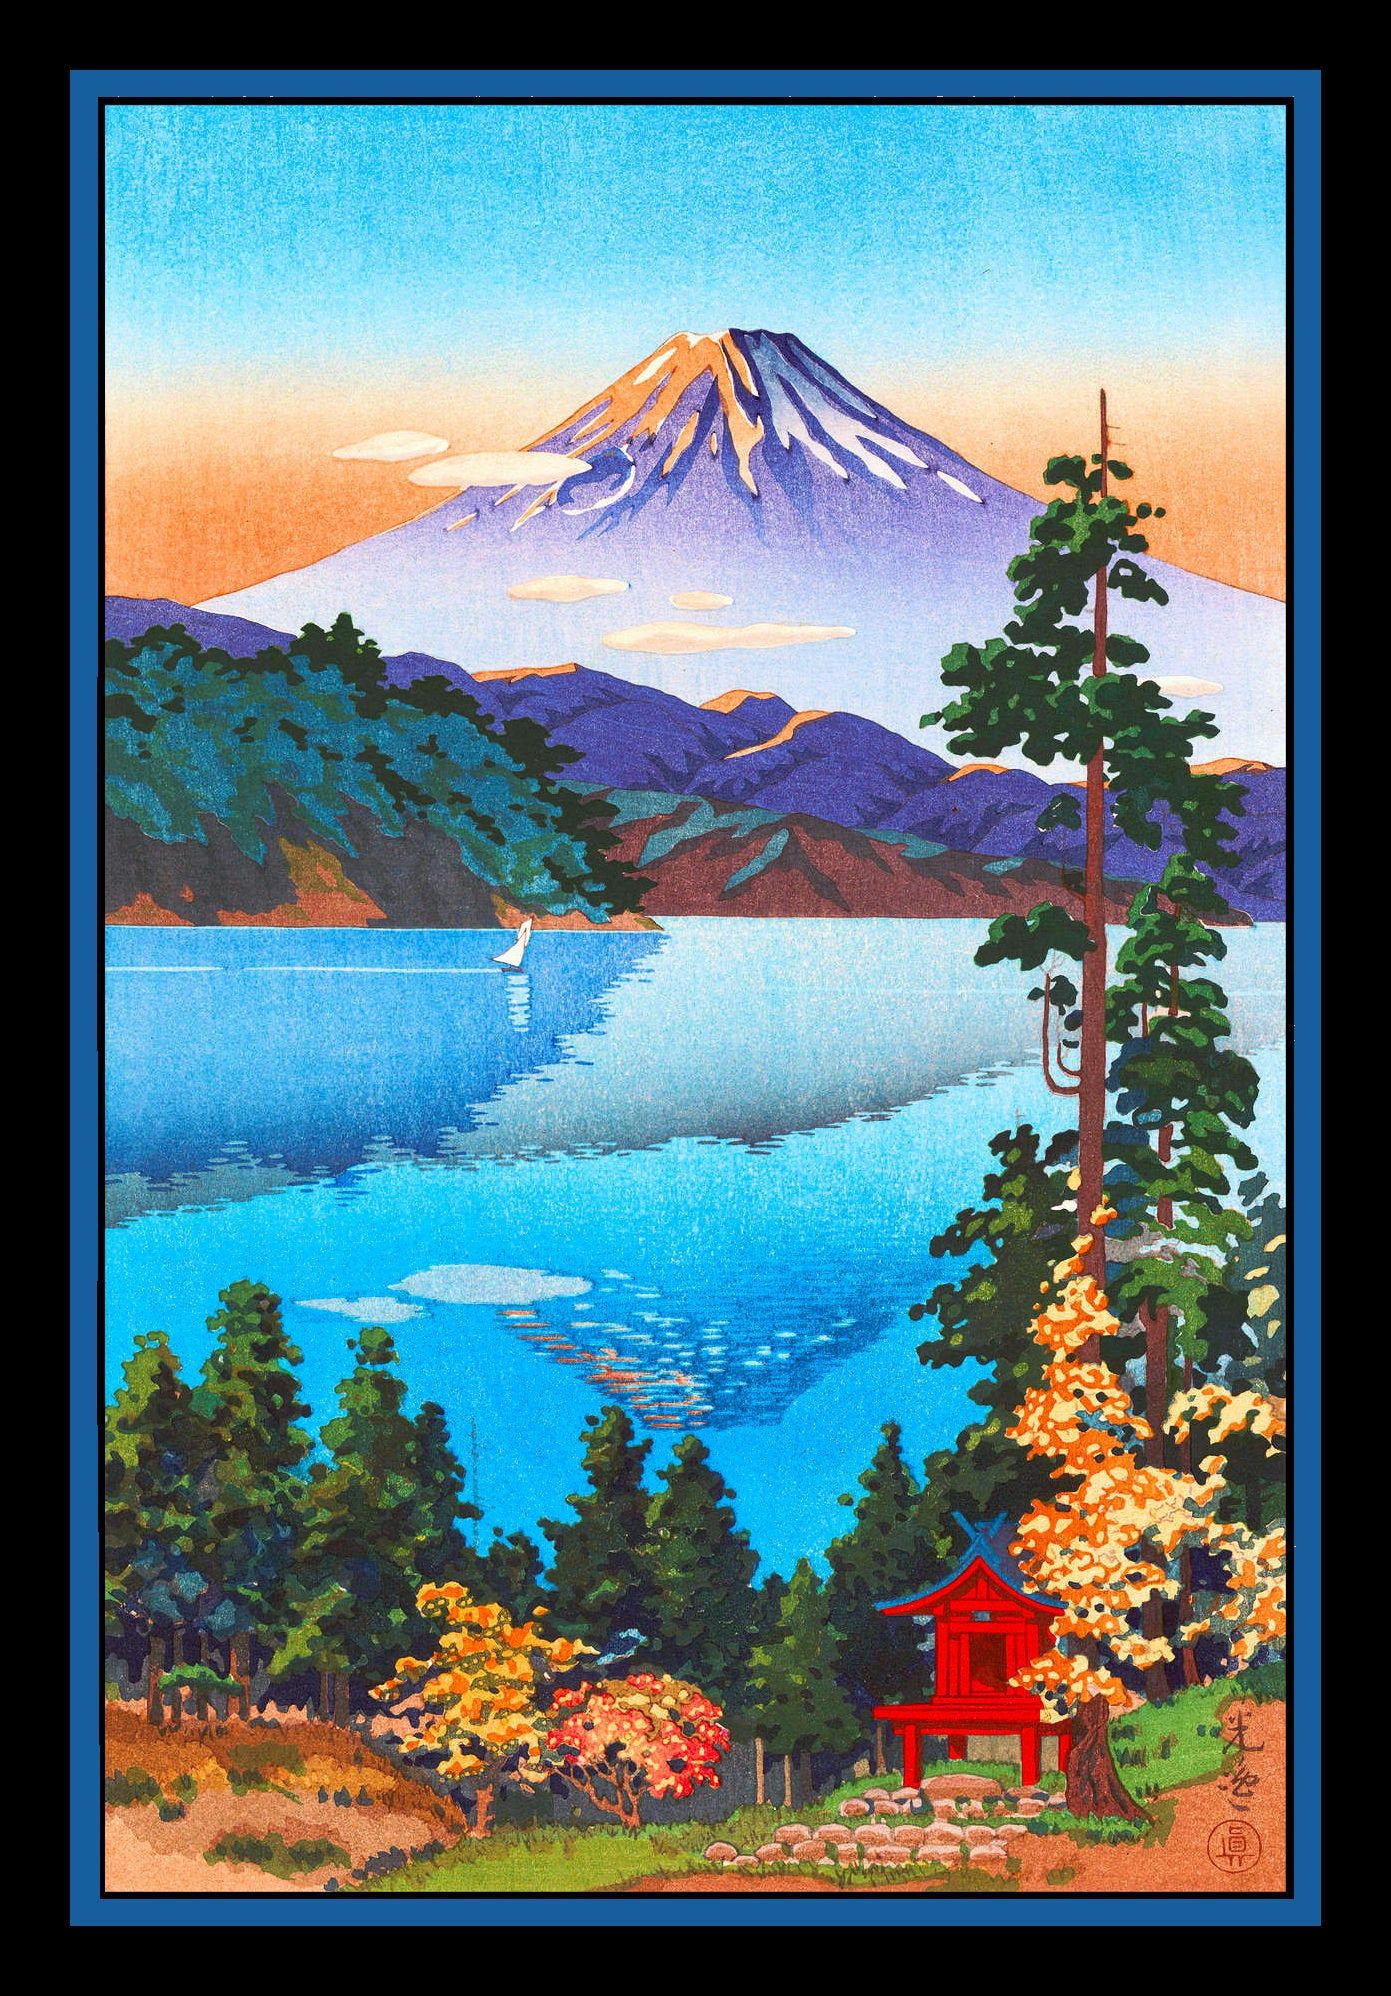 Snow Capped Mountain in Japan Refrigerator Magnet